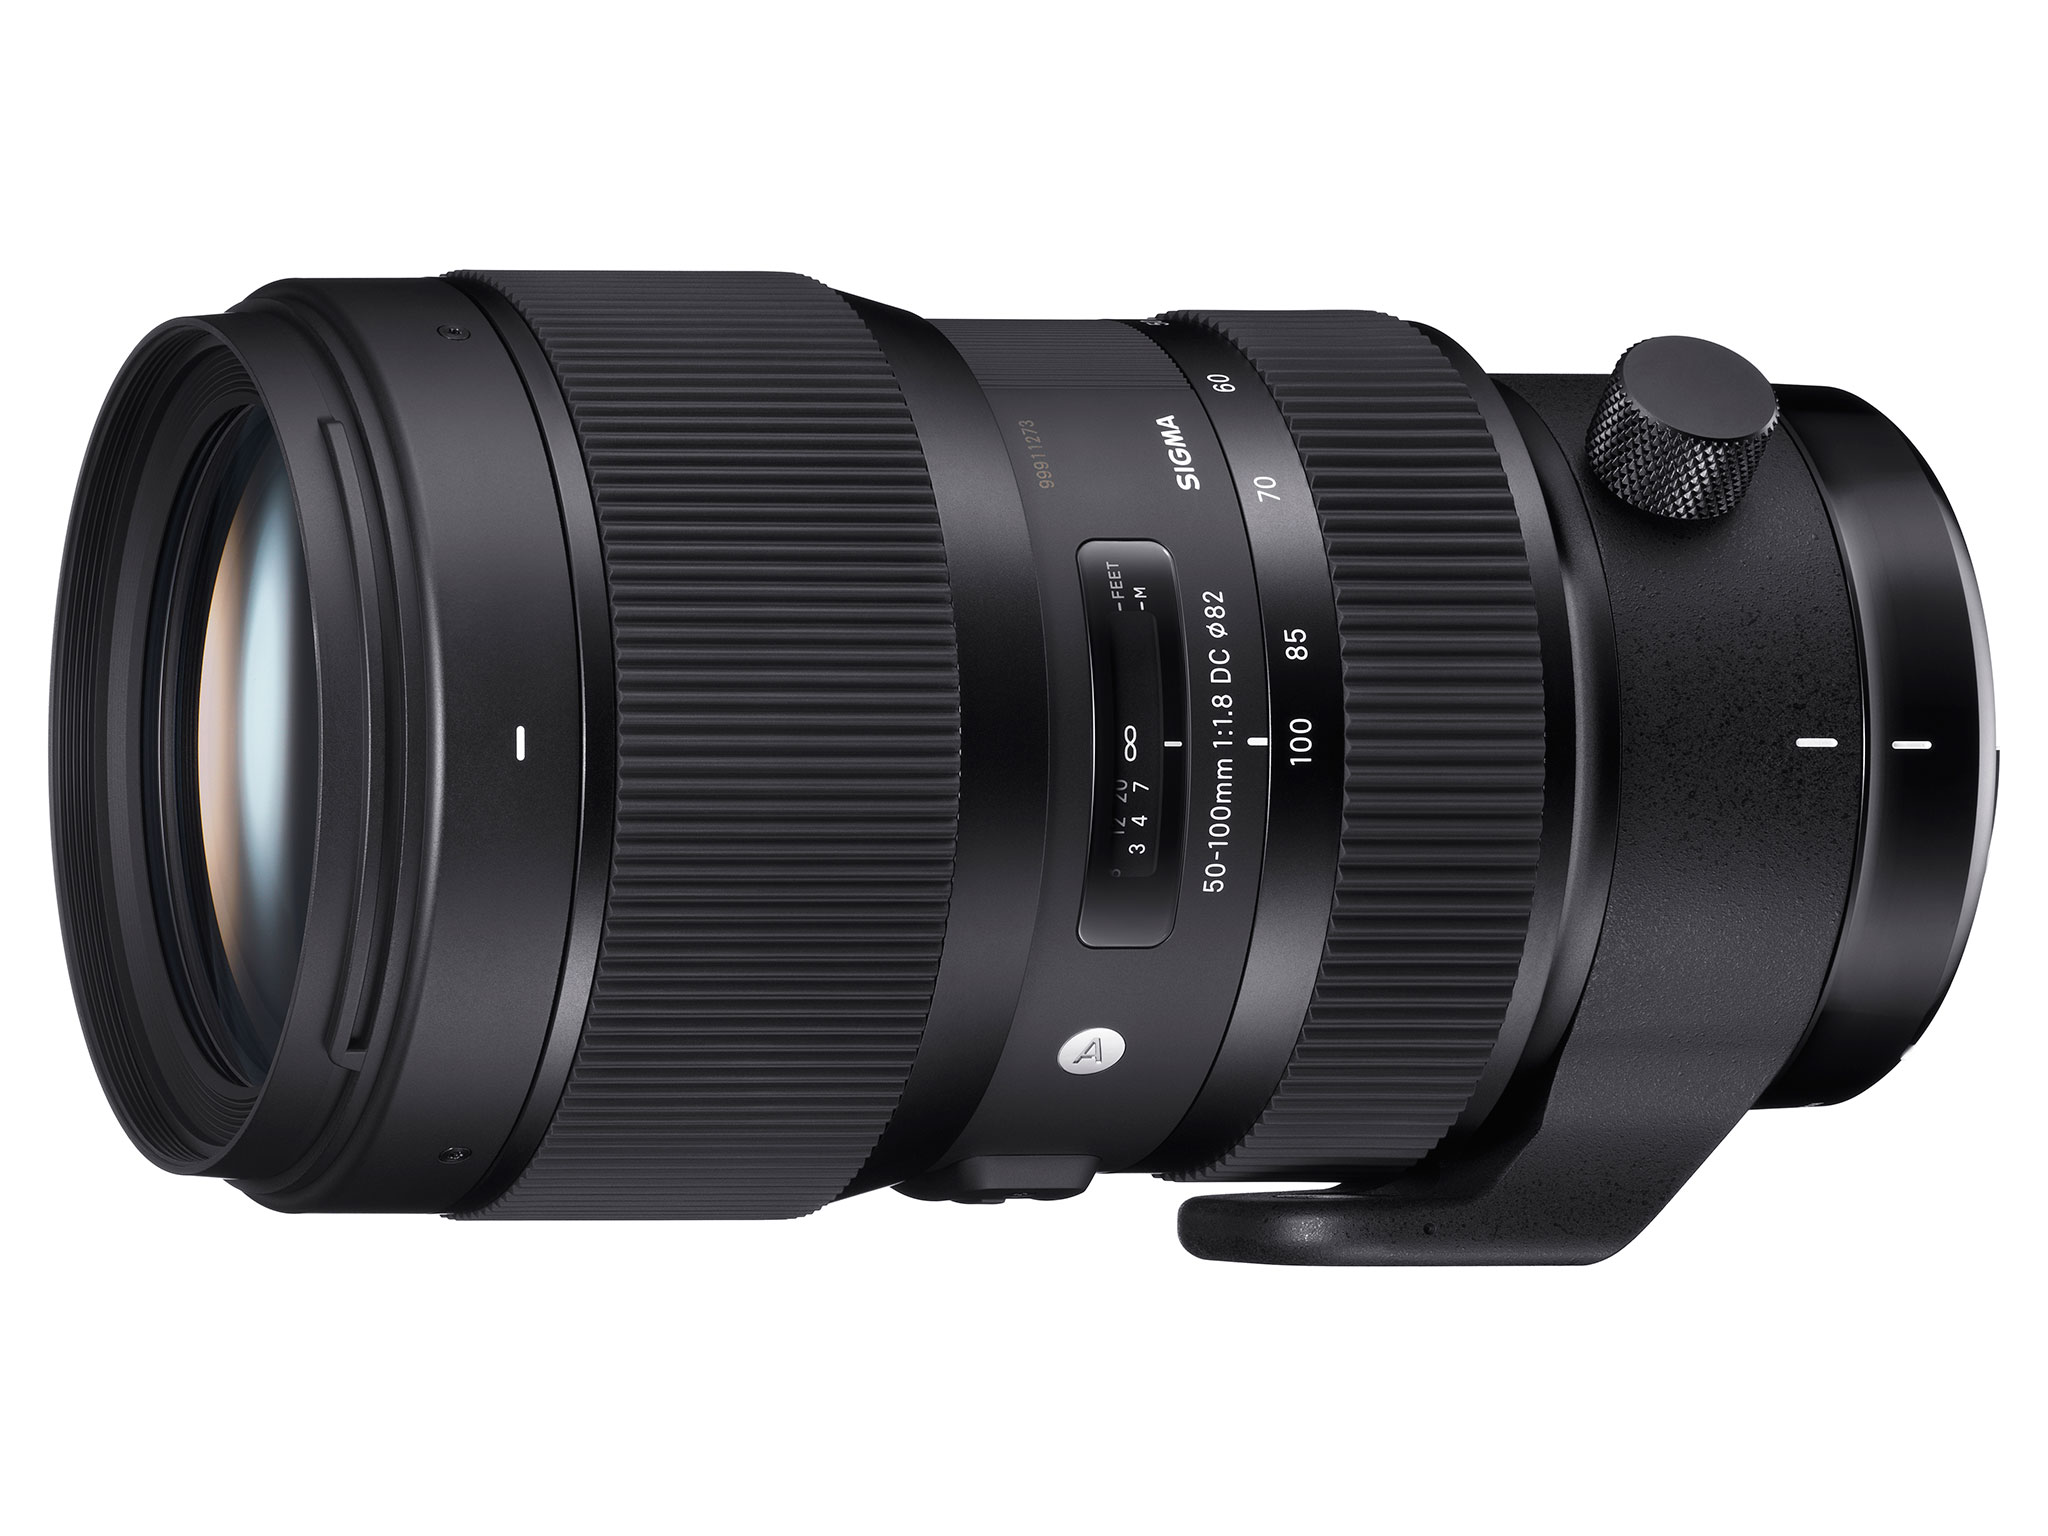 sigma 50 100mm f 1 8 dc hsm art lens officially announced. Black Bedroom Furniture Sets. Home Design Ideas